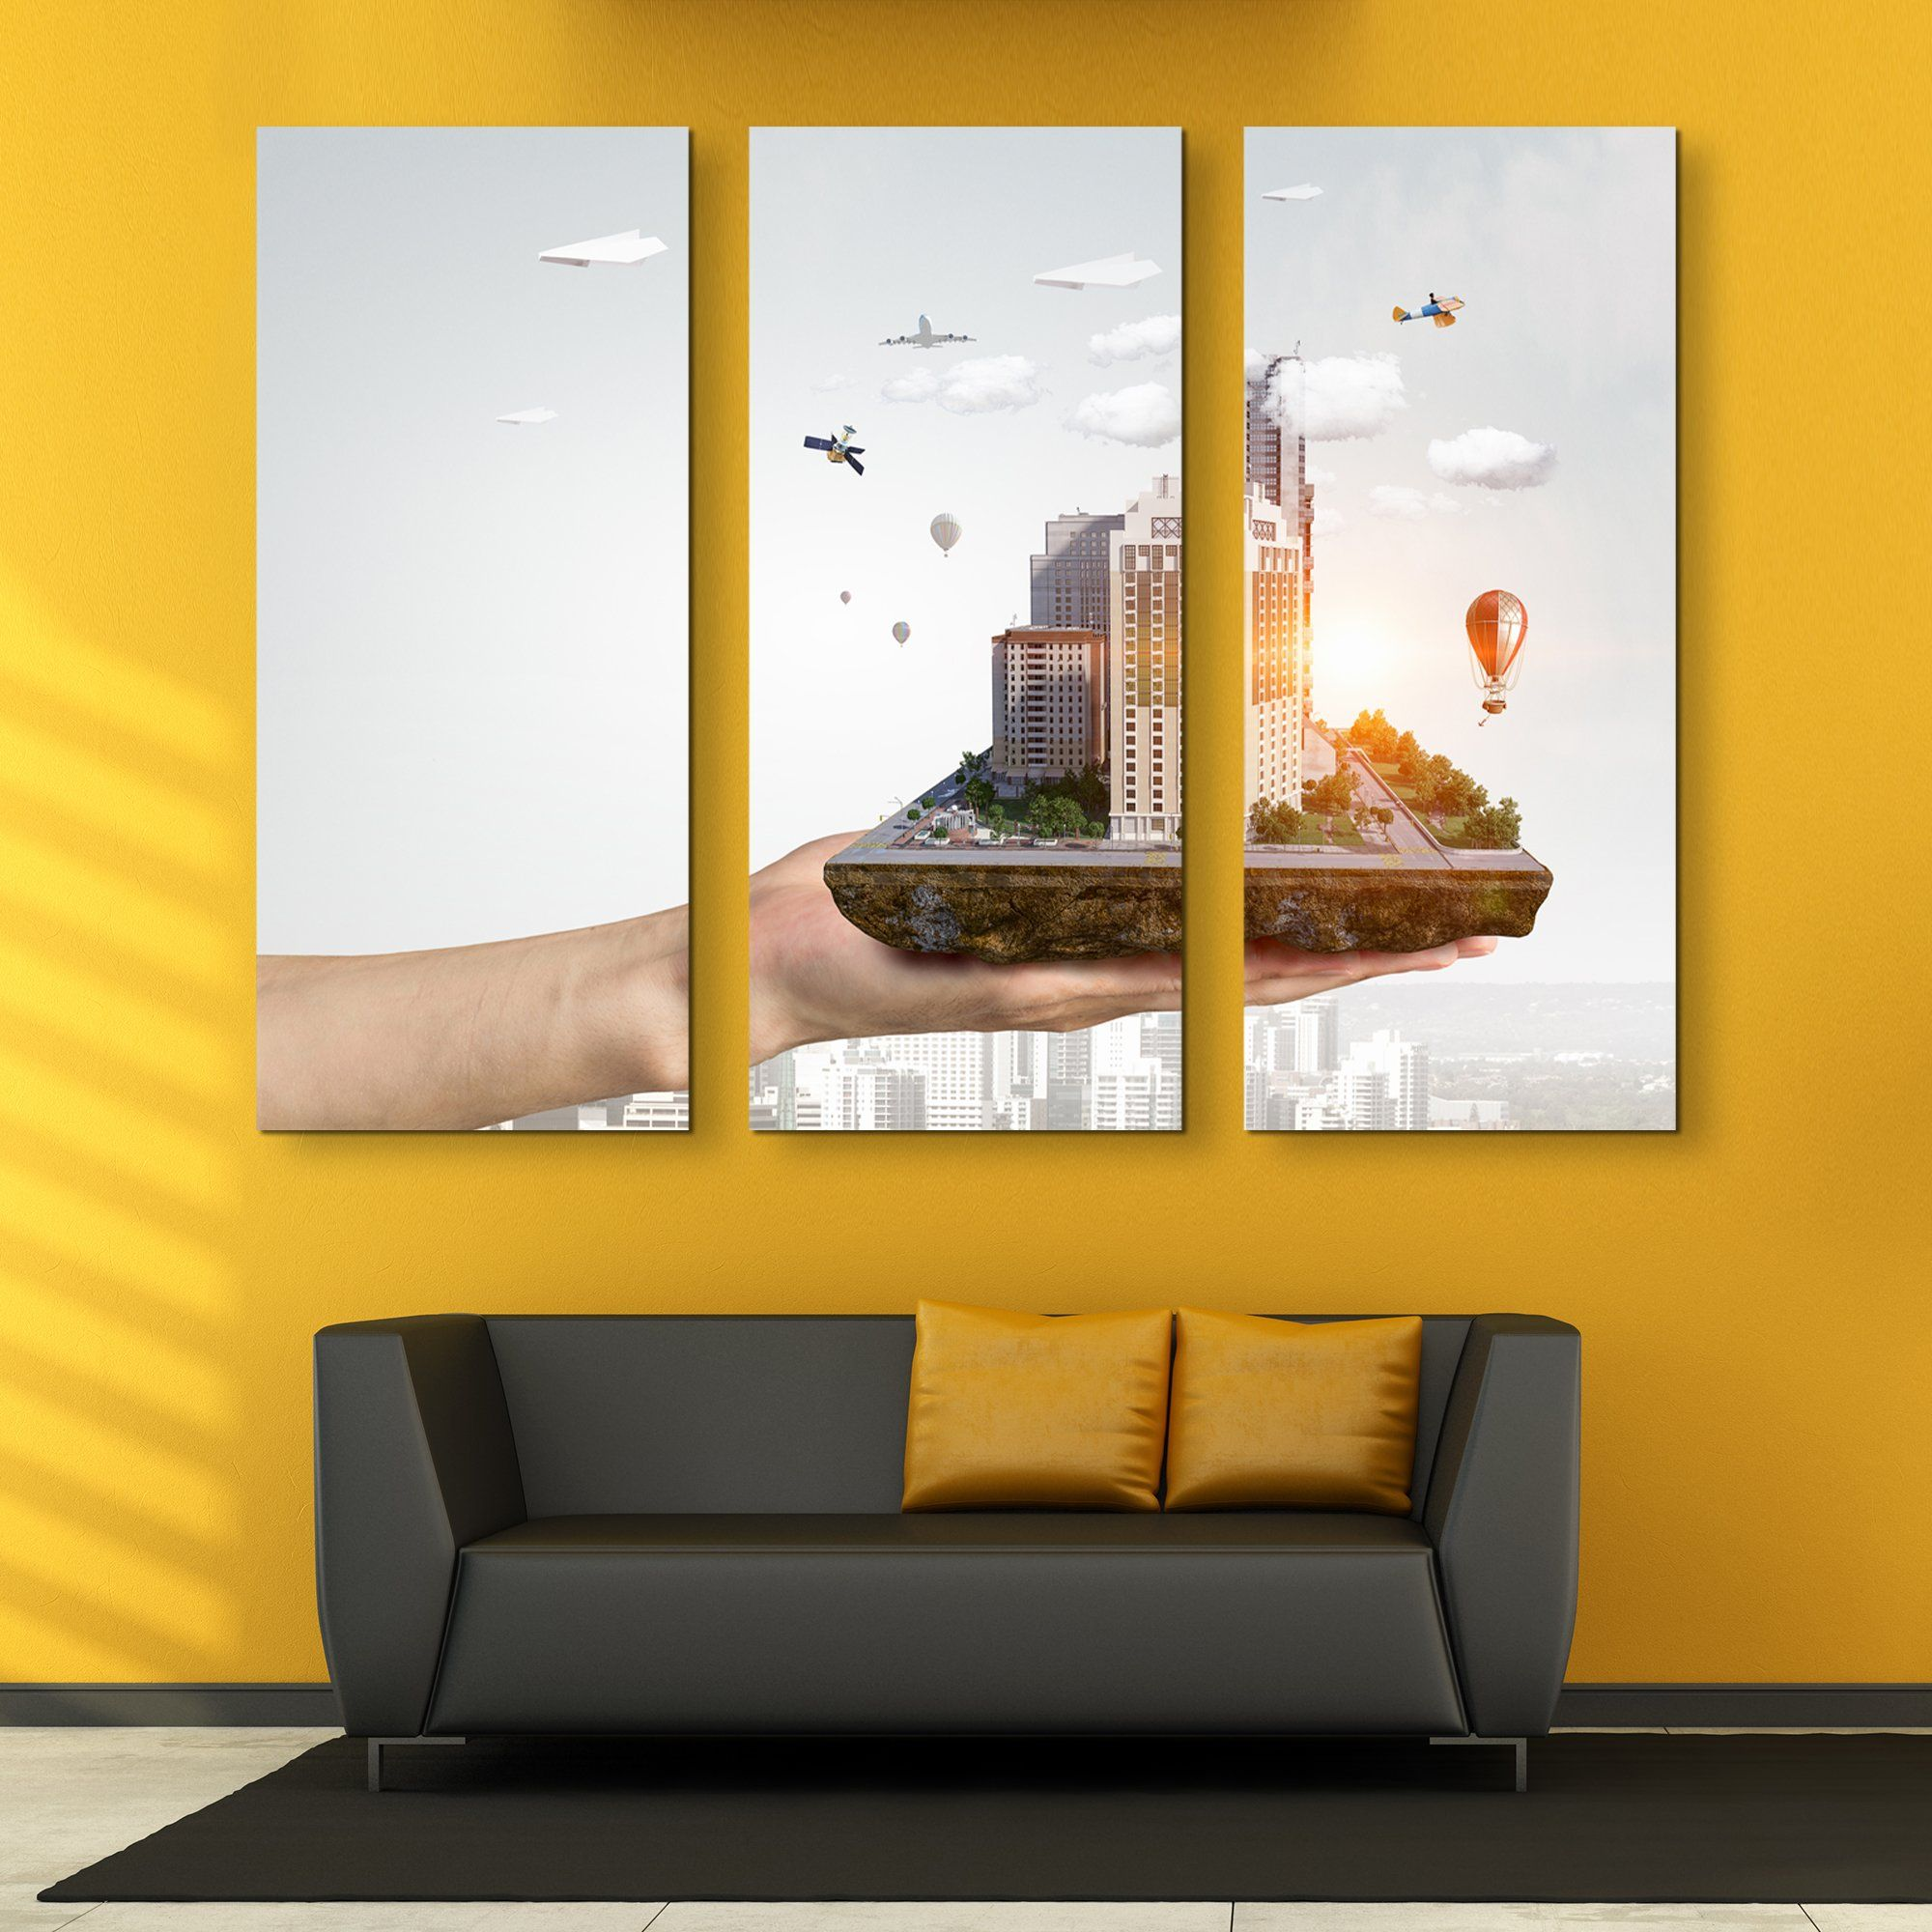 3 piece In the Palm of Your Hand wall art